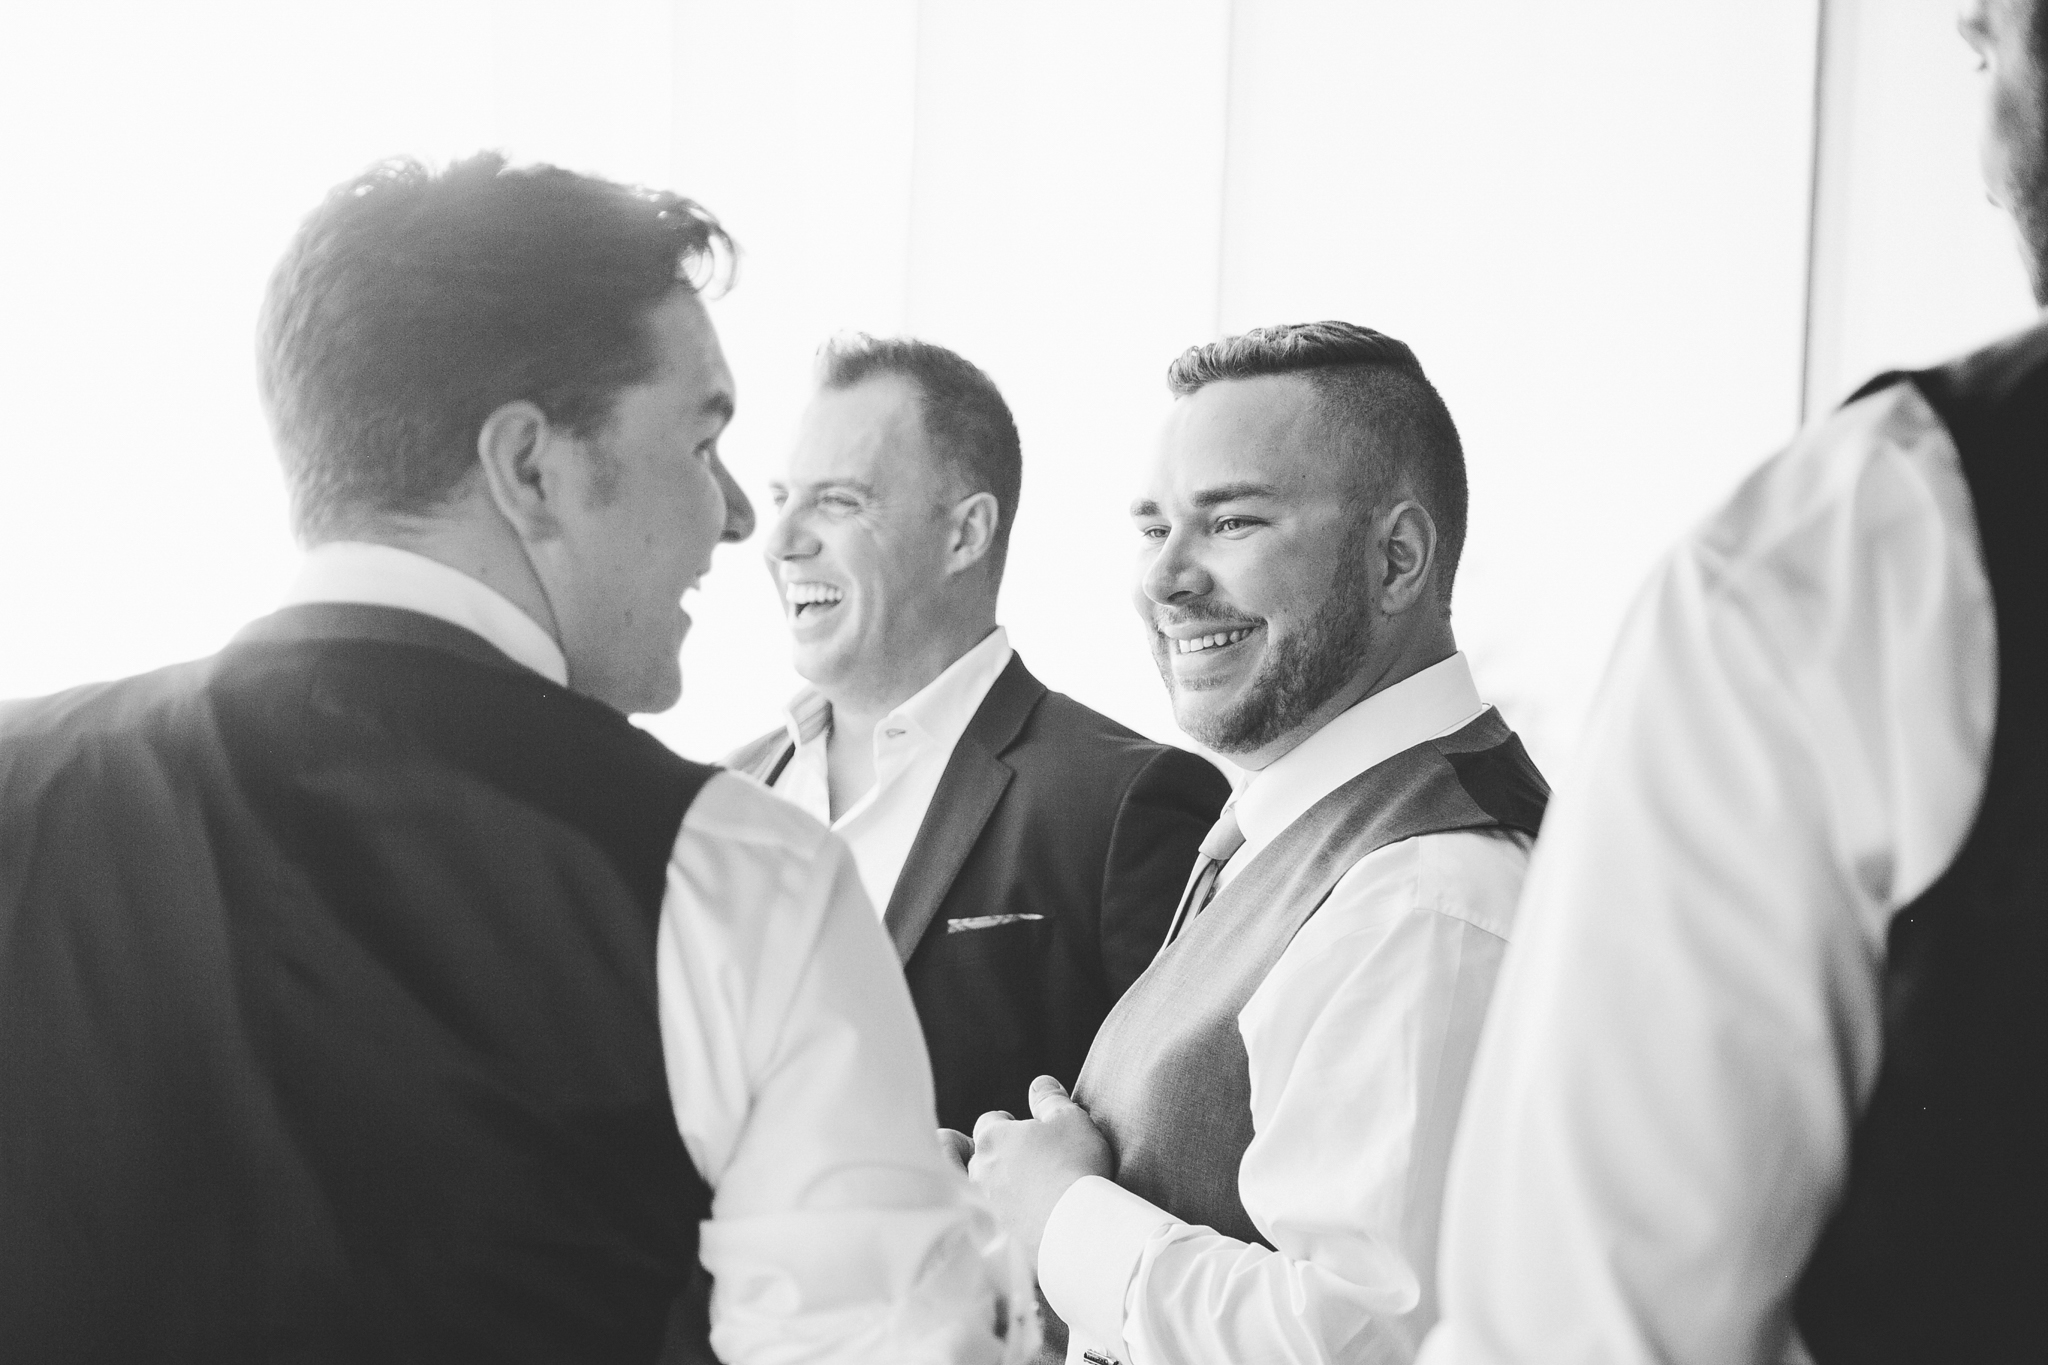 lethbridge-wedding-photographer-love-and-be-loved-photography-trent-danielle-galt-reception-picture-image-photo-222.jpg